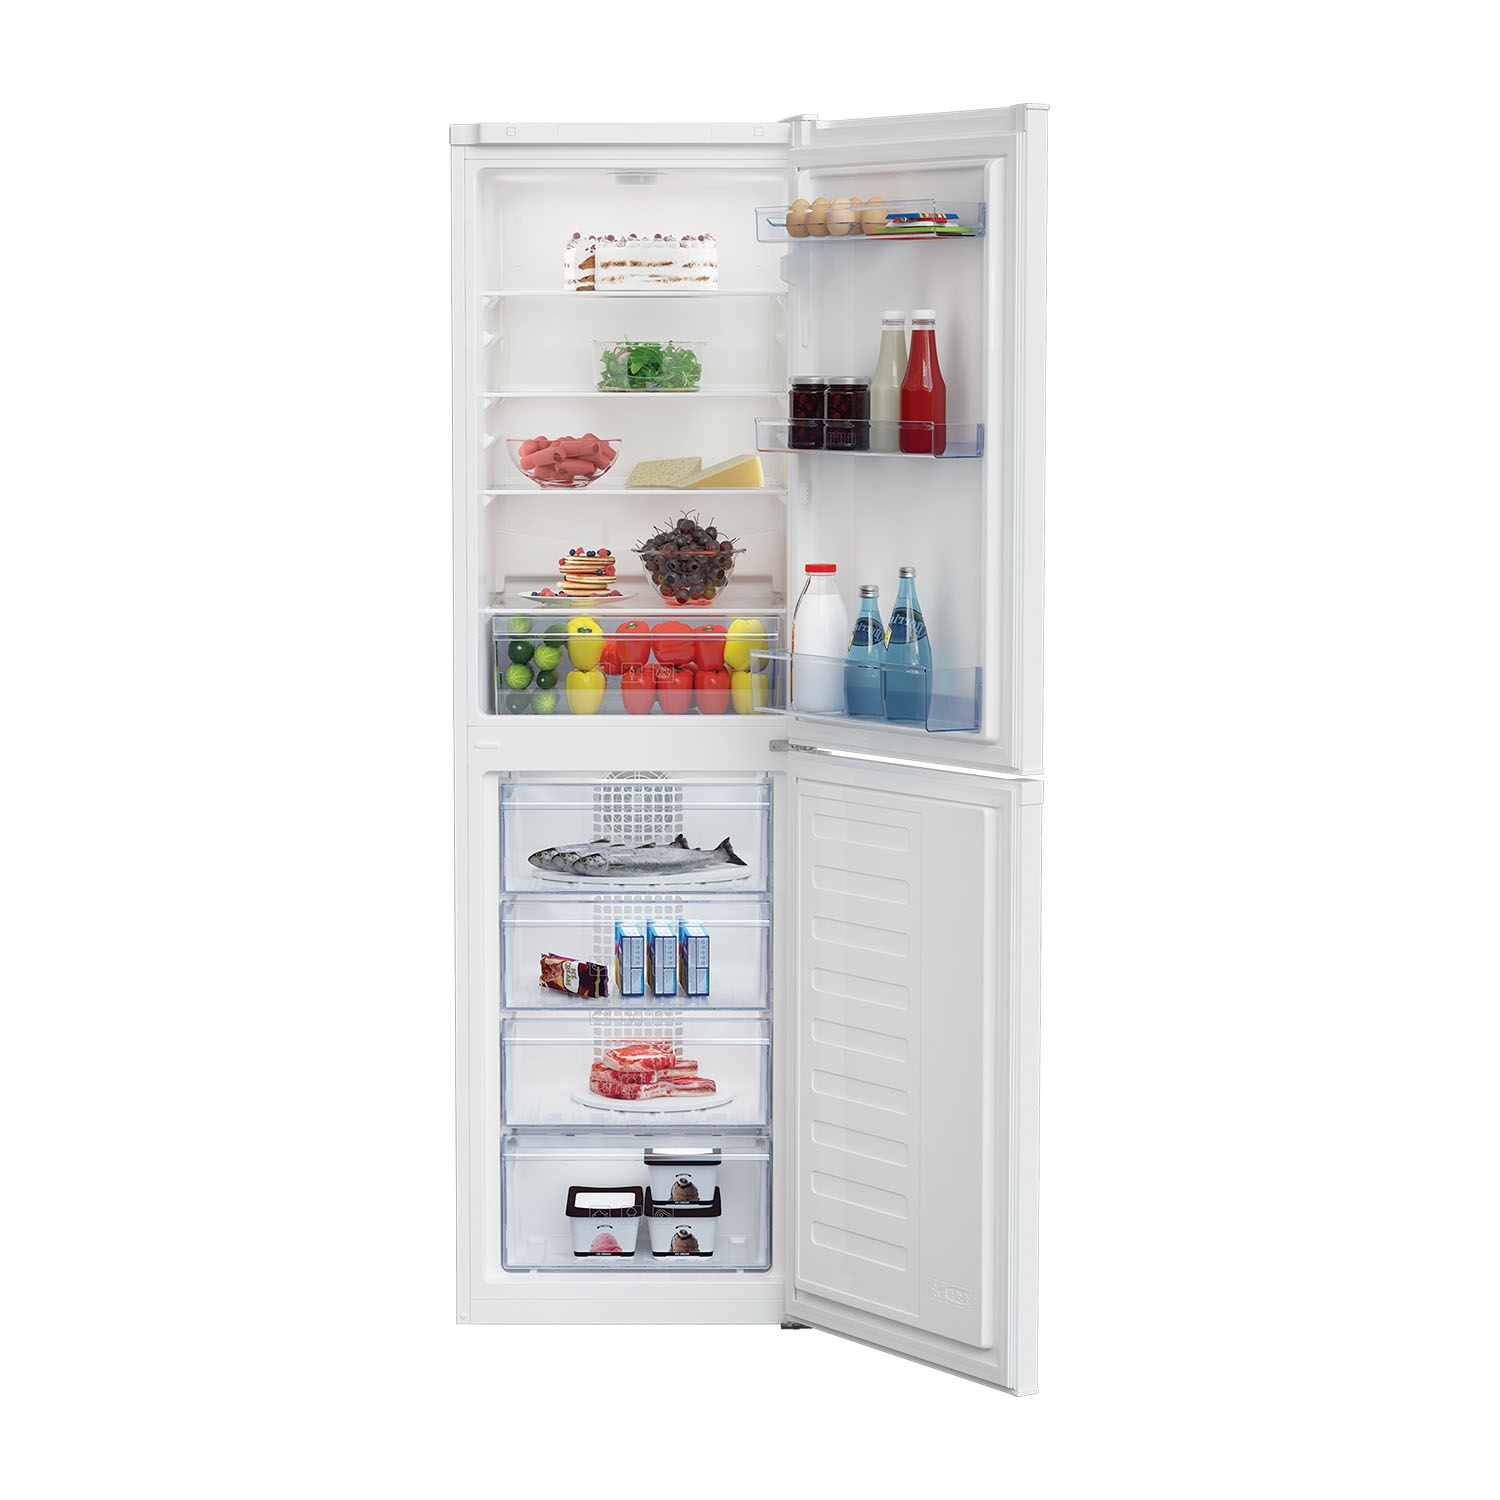 Beko Frost Free Fridge Freezer - White - A+ Energy Rated - 0